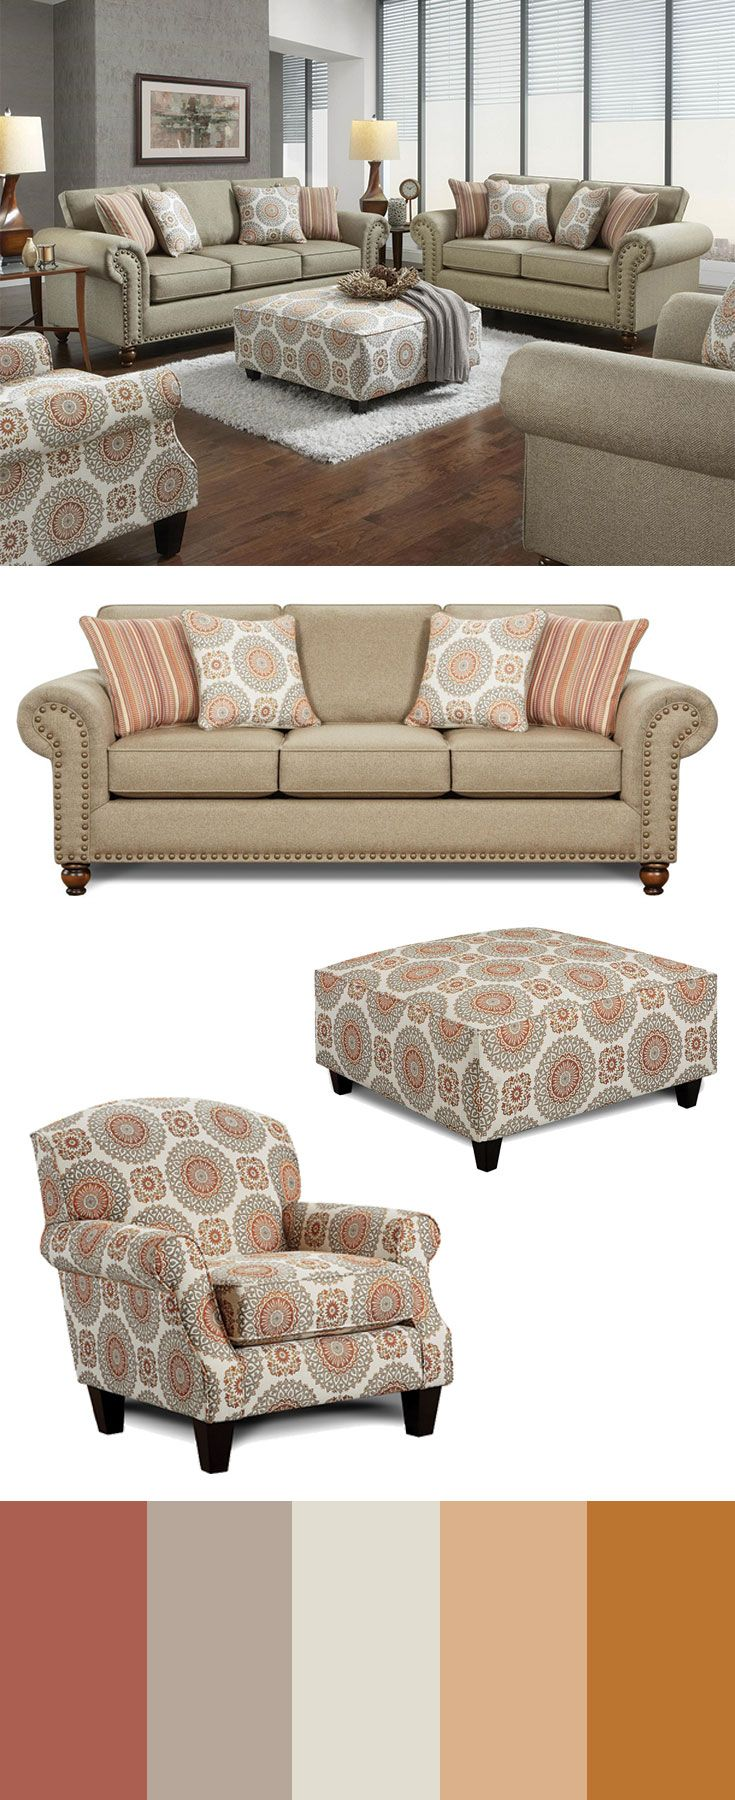 Make An Elegant Impression On Friends And Family With The Classic Details Displayed Throughout This Upholstery Collection Sty Royal Furniture Sofa Design Living Room Furniture